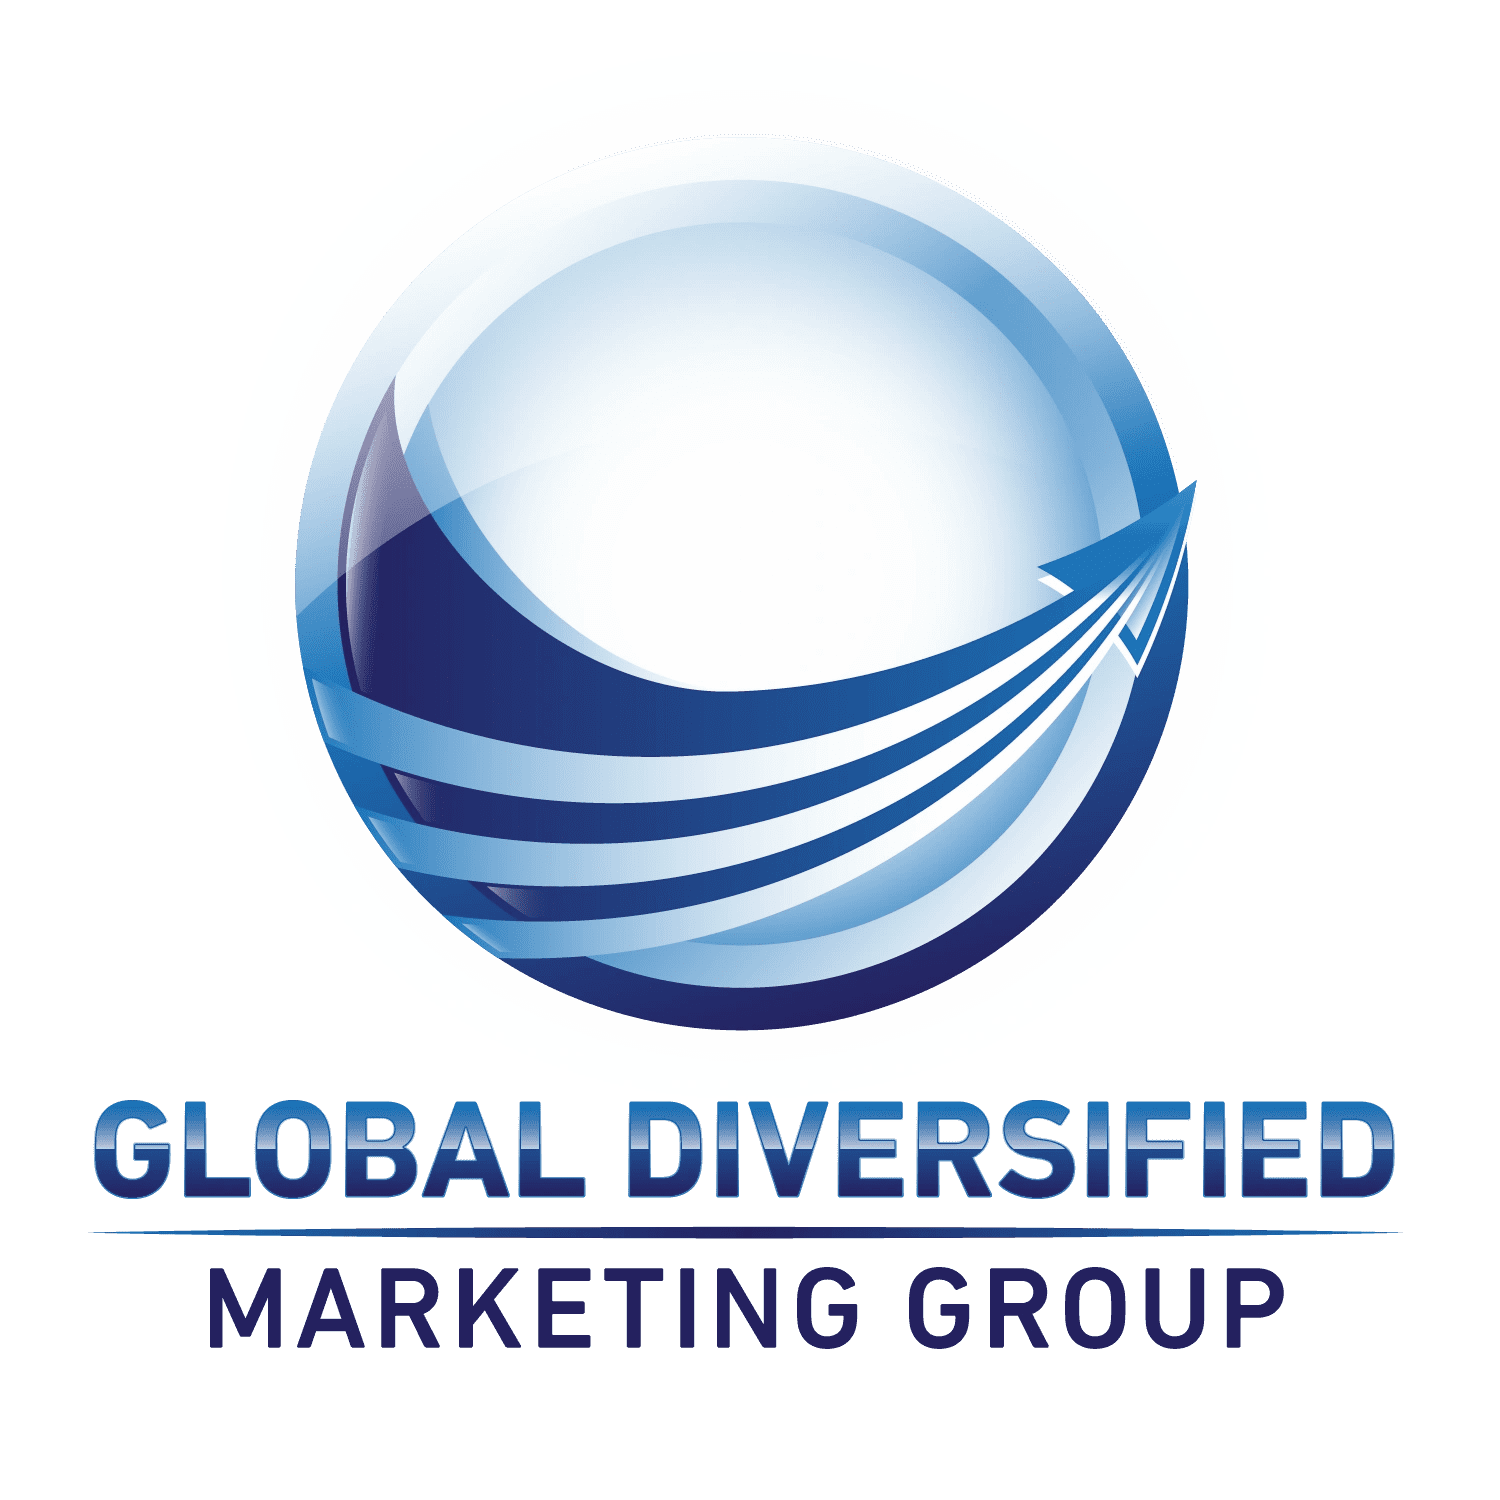 Global Diversified Marketing Group CEO Paul Adler Updates, NASDAQ Up-Listing, Sales, Growth and 2021 Second Half Highlights